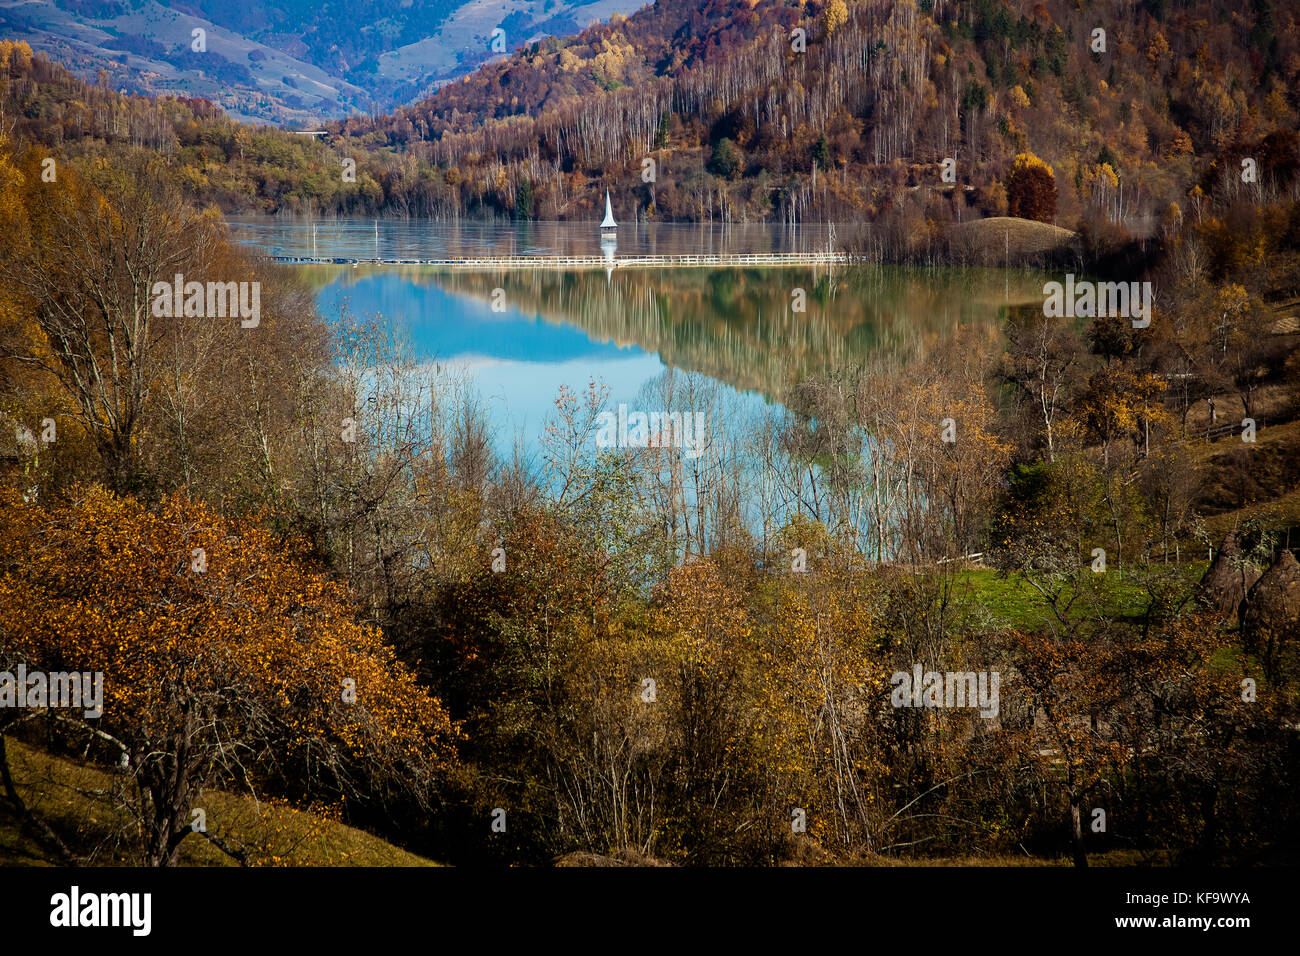 cyanide pollution at Geamana Lake near Rosia Montana, flooded village, ecological disaster - Stock Image